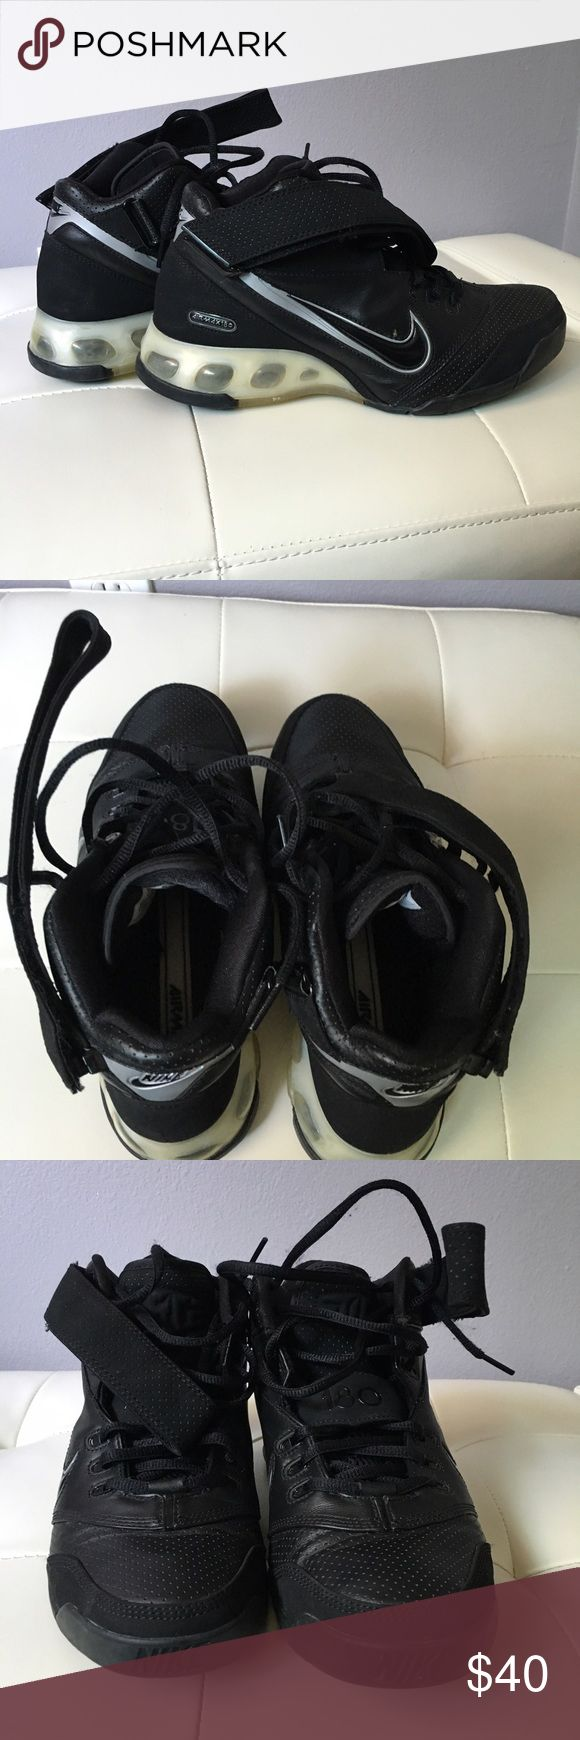 Nike Black Air Max 180 Basketball Gently worn still in great condition men's Nike Air Max basketball hi tops. Will come with box. Nike Shoes